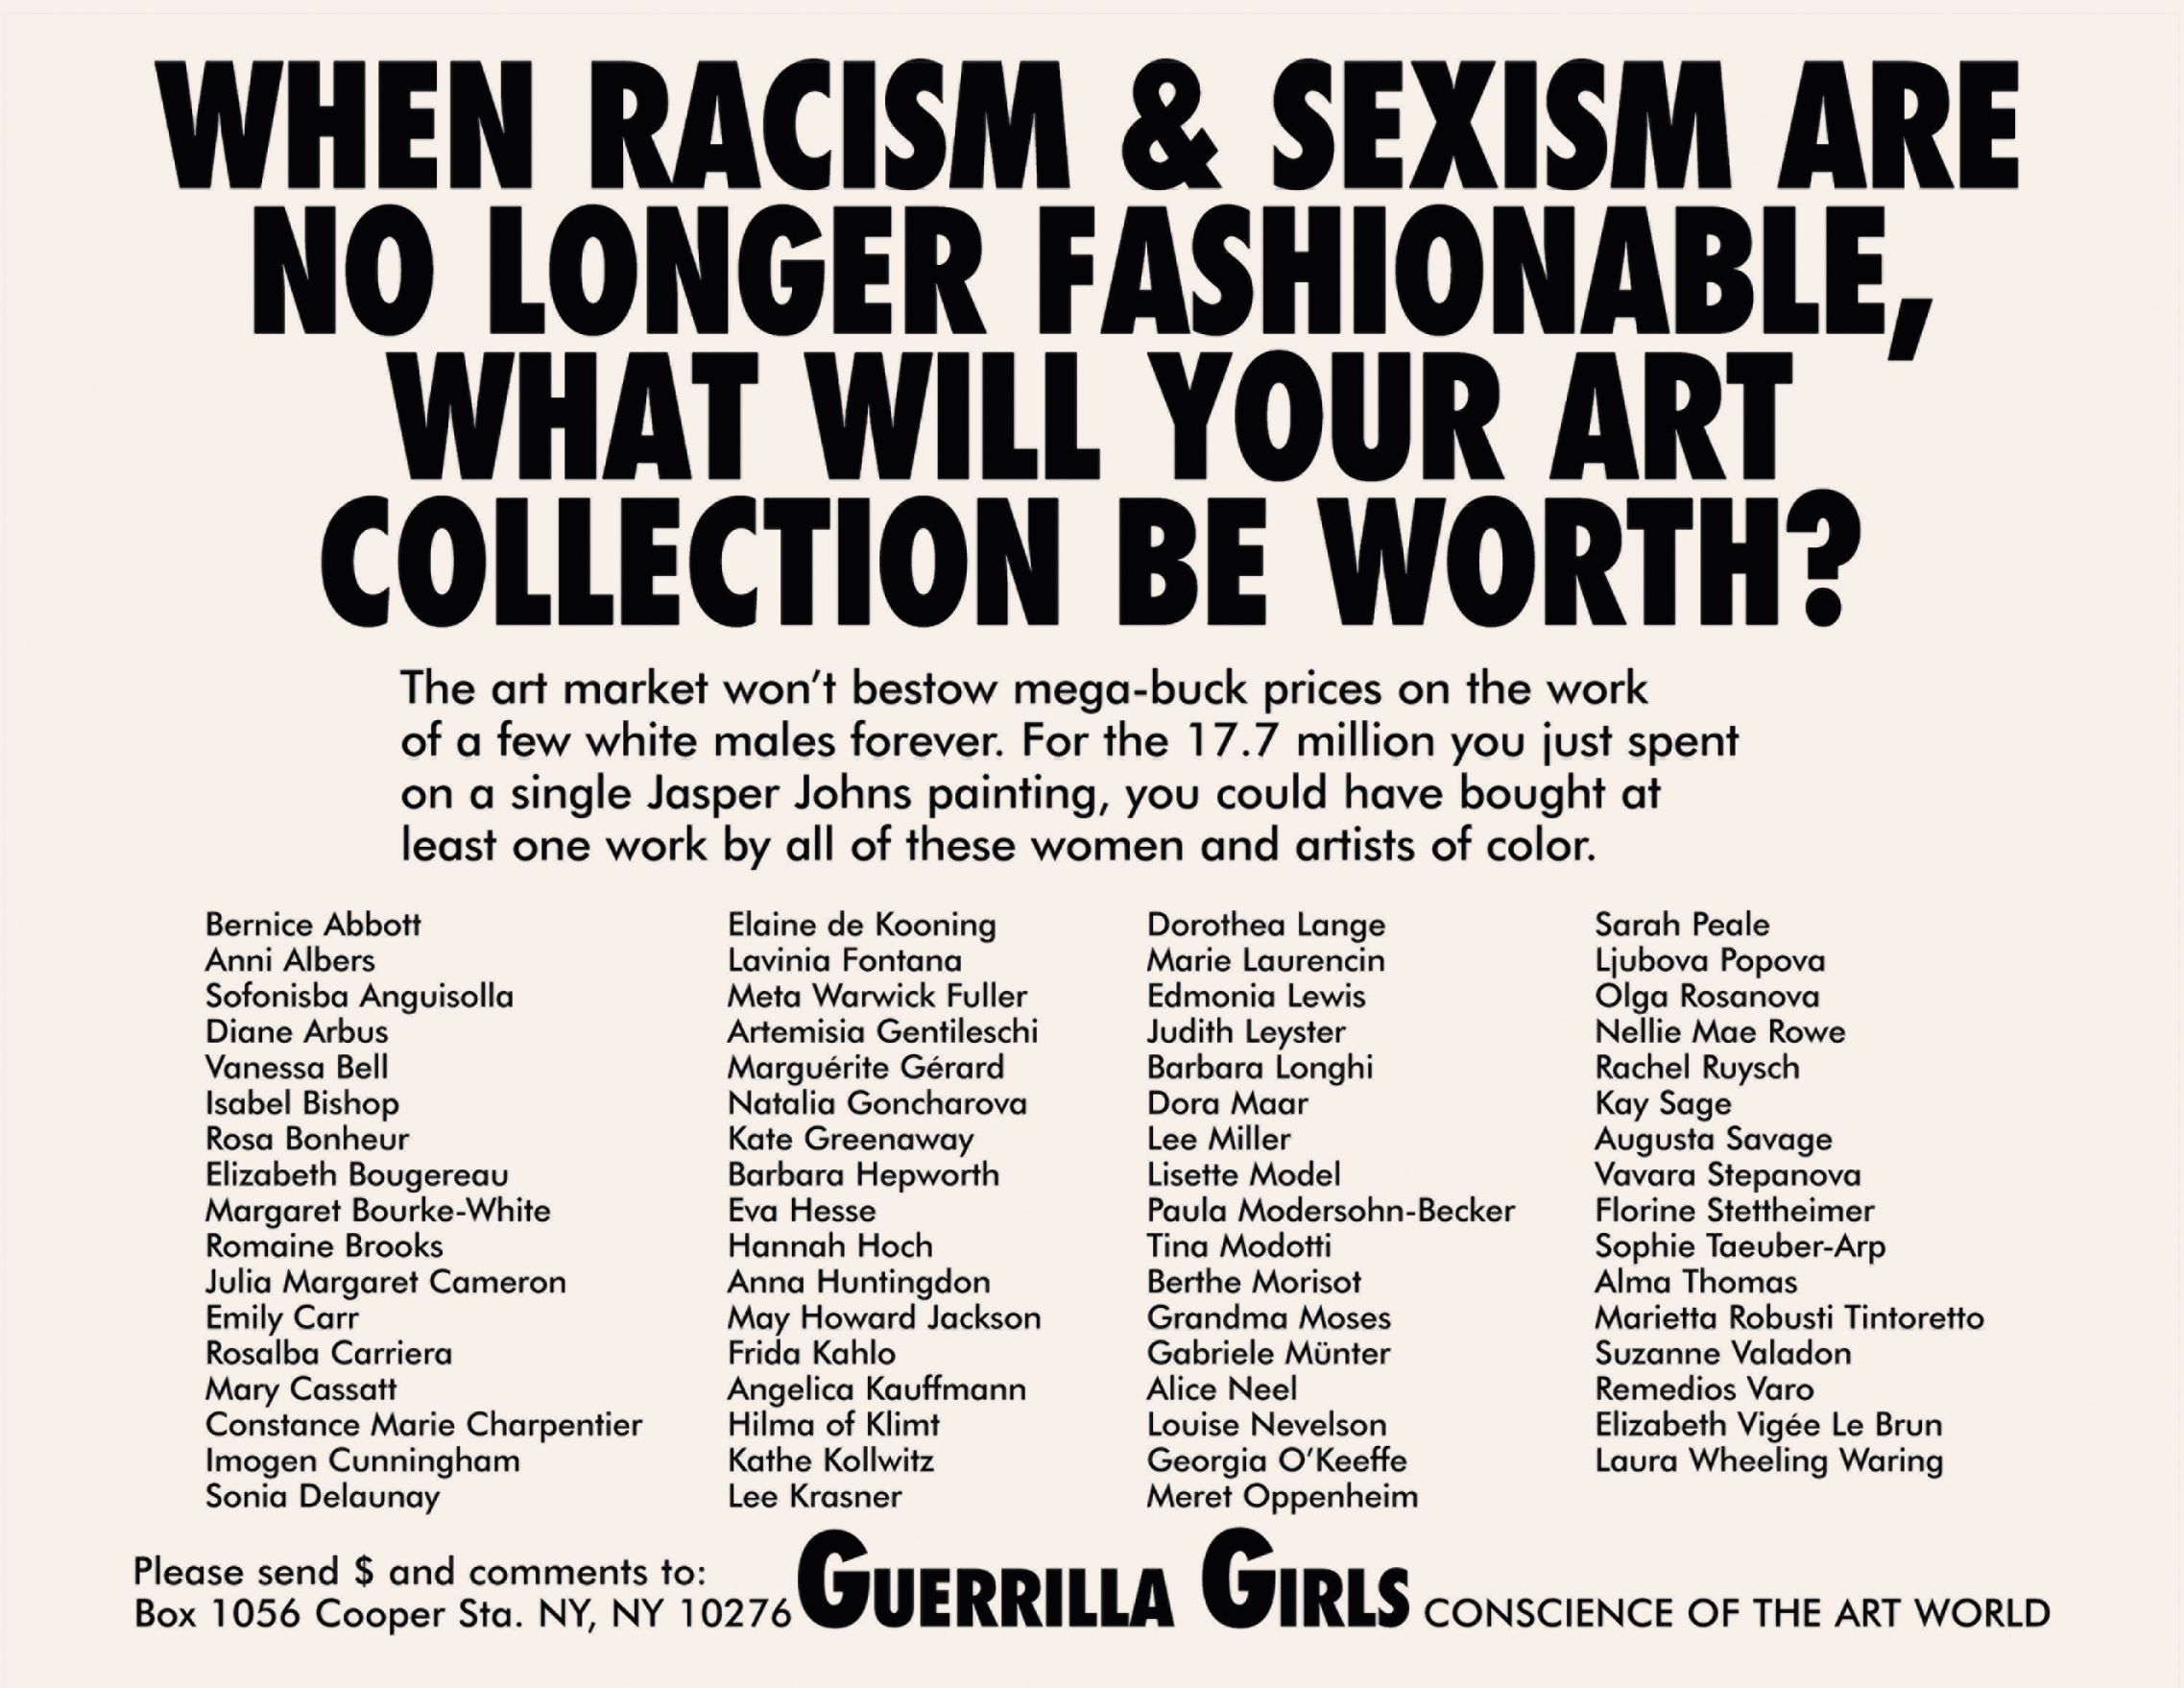 When Racism & Sexism are No Longer Fashionable, What Will Your Art Collection be Worth? 1989, by the Guerrilla Girls